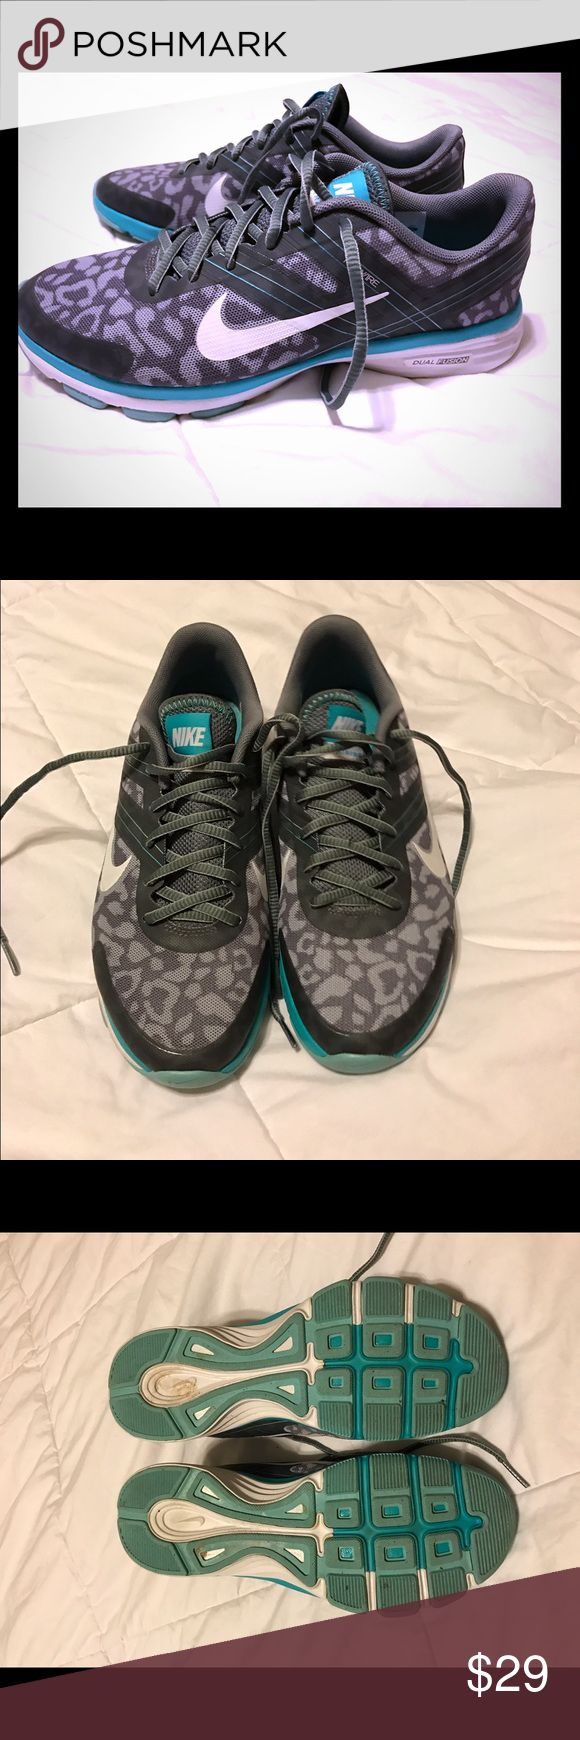 Nike Dual Fusion Nike dual fusion! Size 6.5. Great condition! Nike Shoes Sneakers